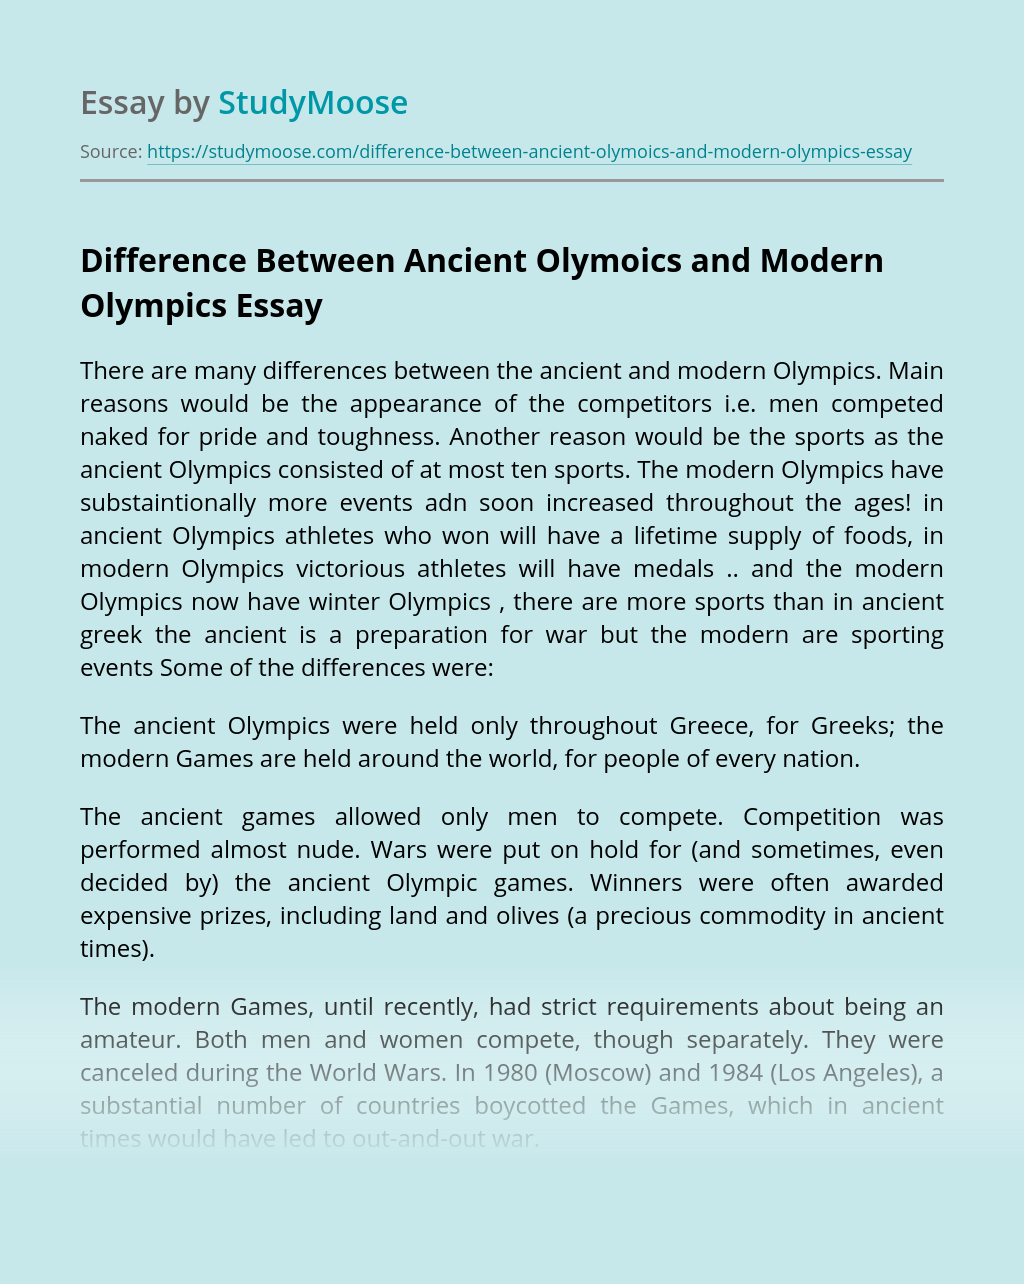 Difference Between Ancient Olymoics and Modern Olympics